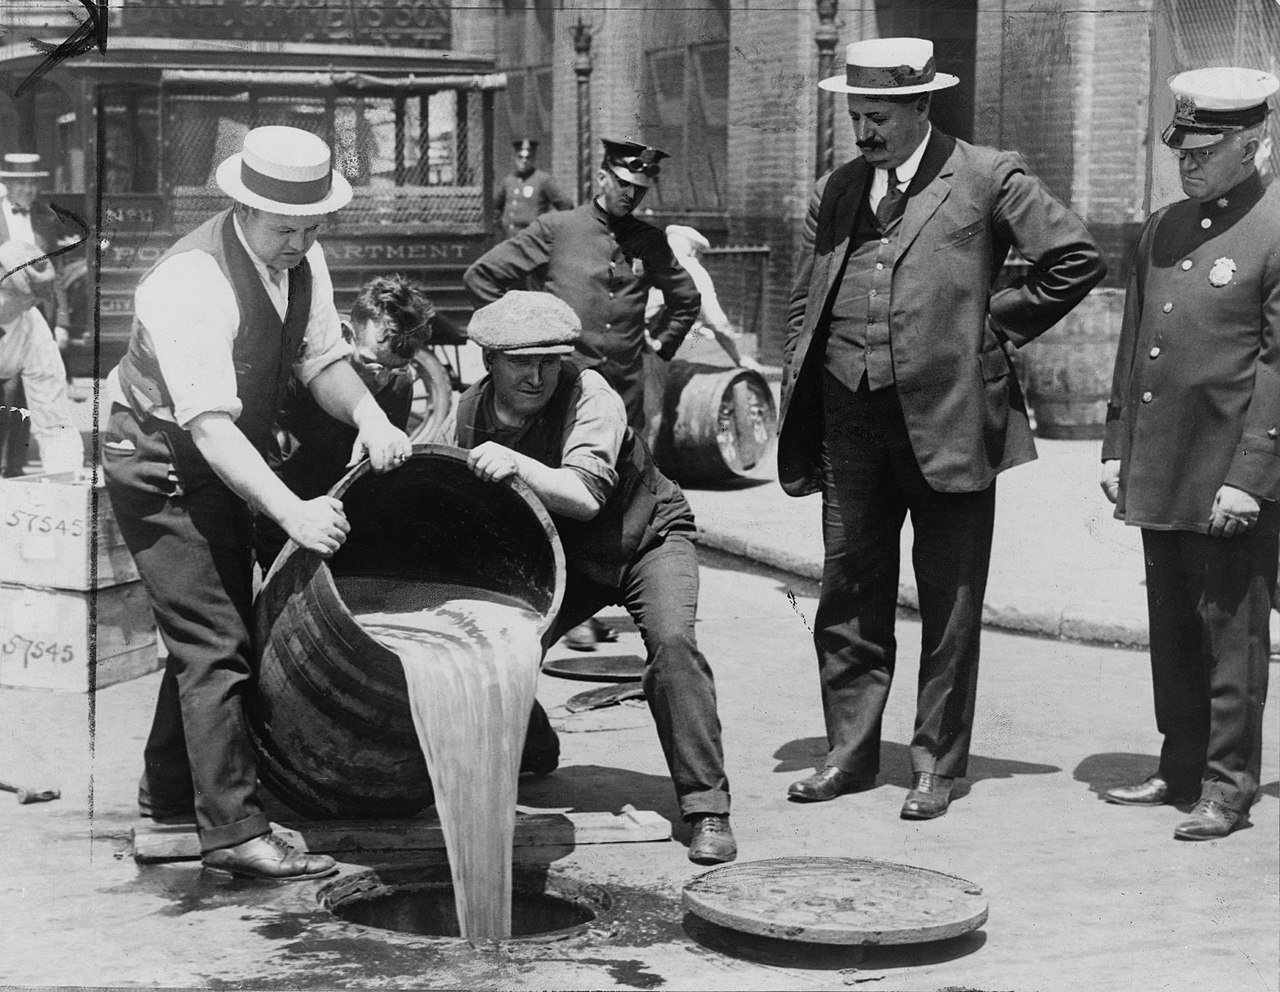 1280px-5_prohibition_disposal_9_cropped.jpg